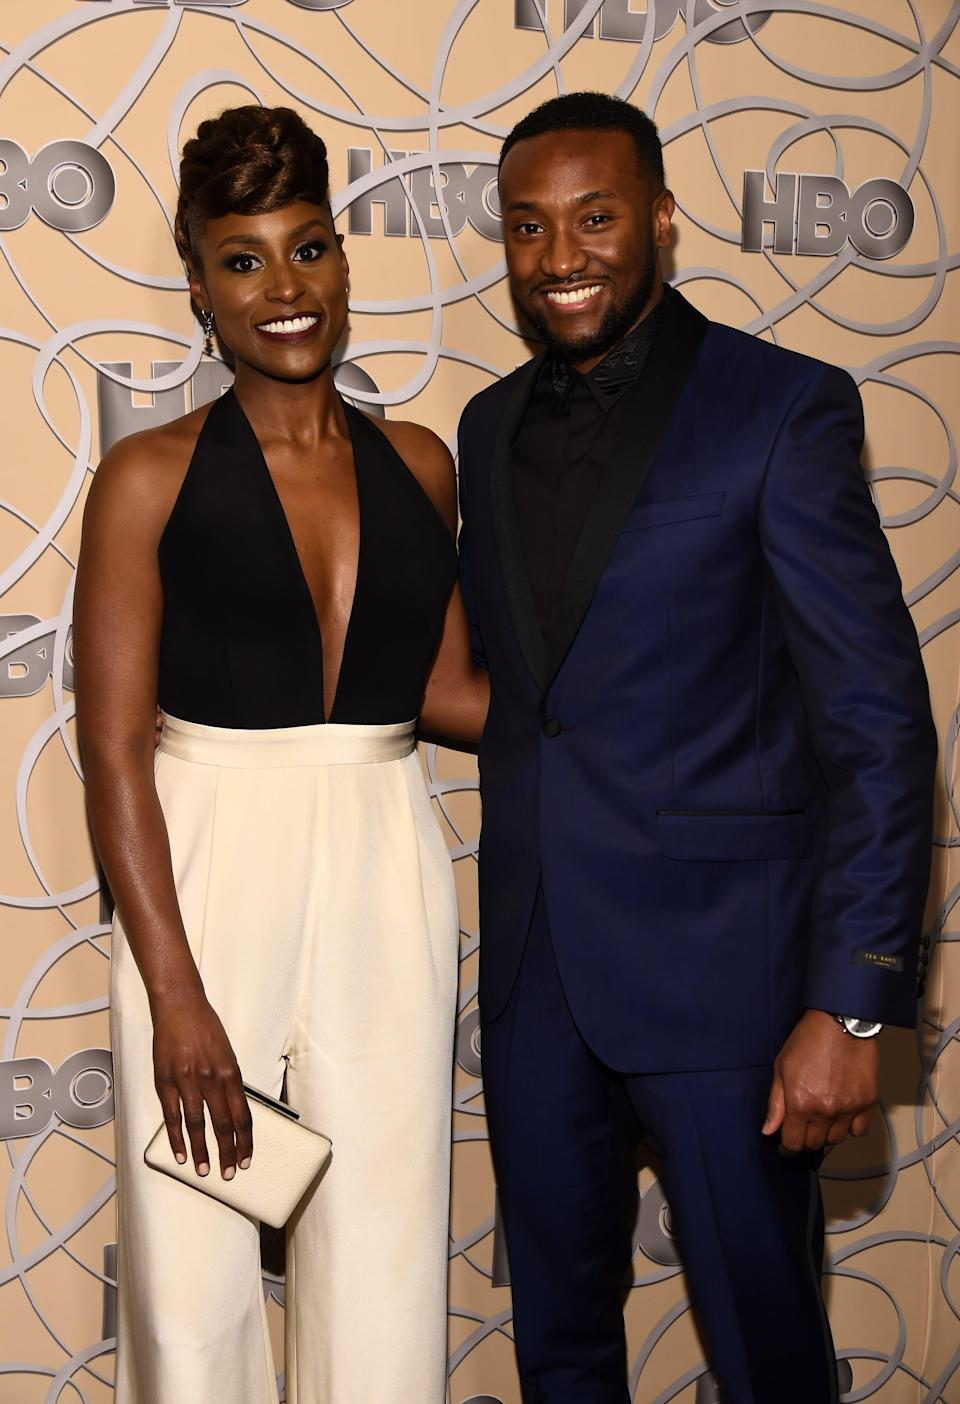 LOS ANGELES, CA - JANUARY 08:  Actress Isaa Rae (L) and Louis Diame arrive at HBO's Official Golden Globe Awards After Party at Circa 55 Restaurant on January 8, 2017 in Los Angeles, California.  (Photo by Amanda Edwards/WireImage)